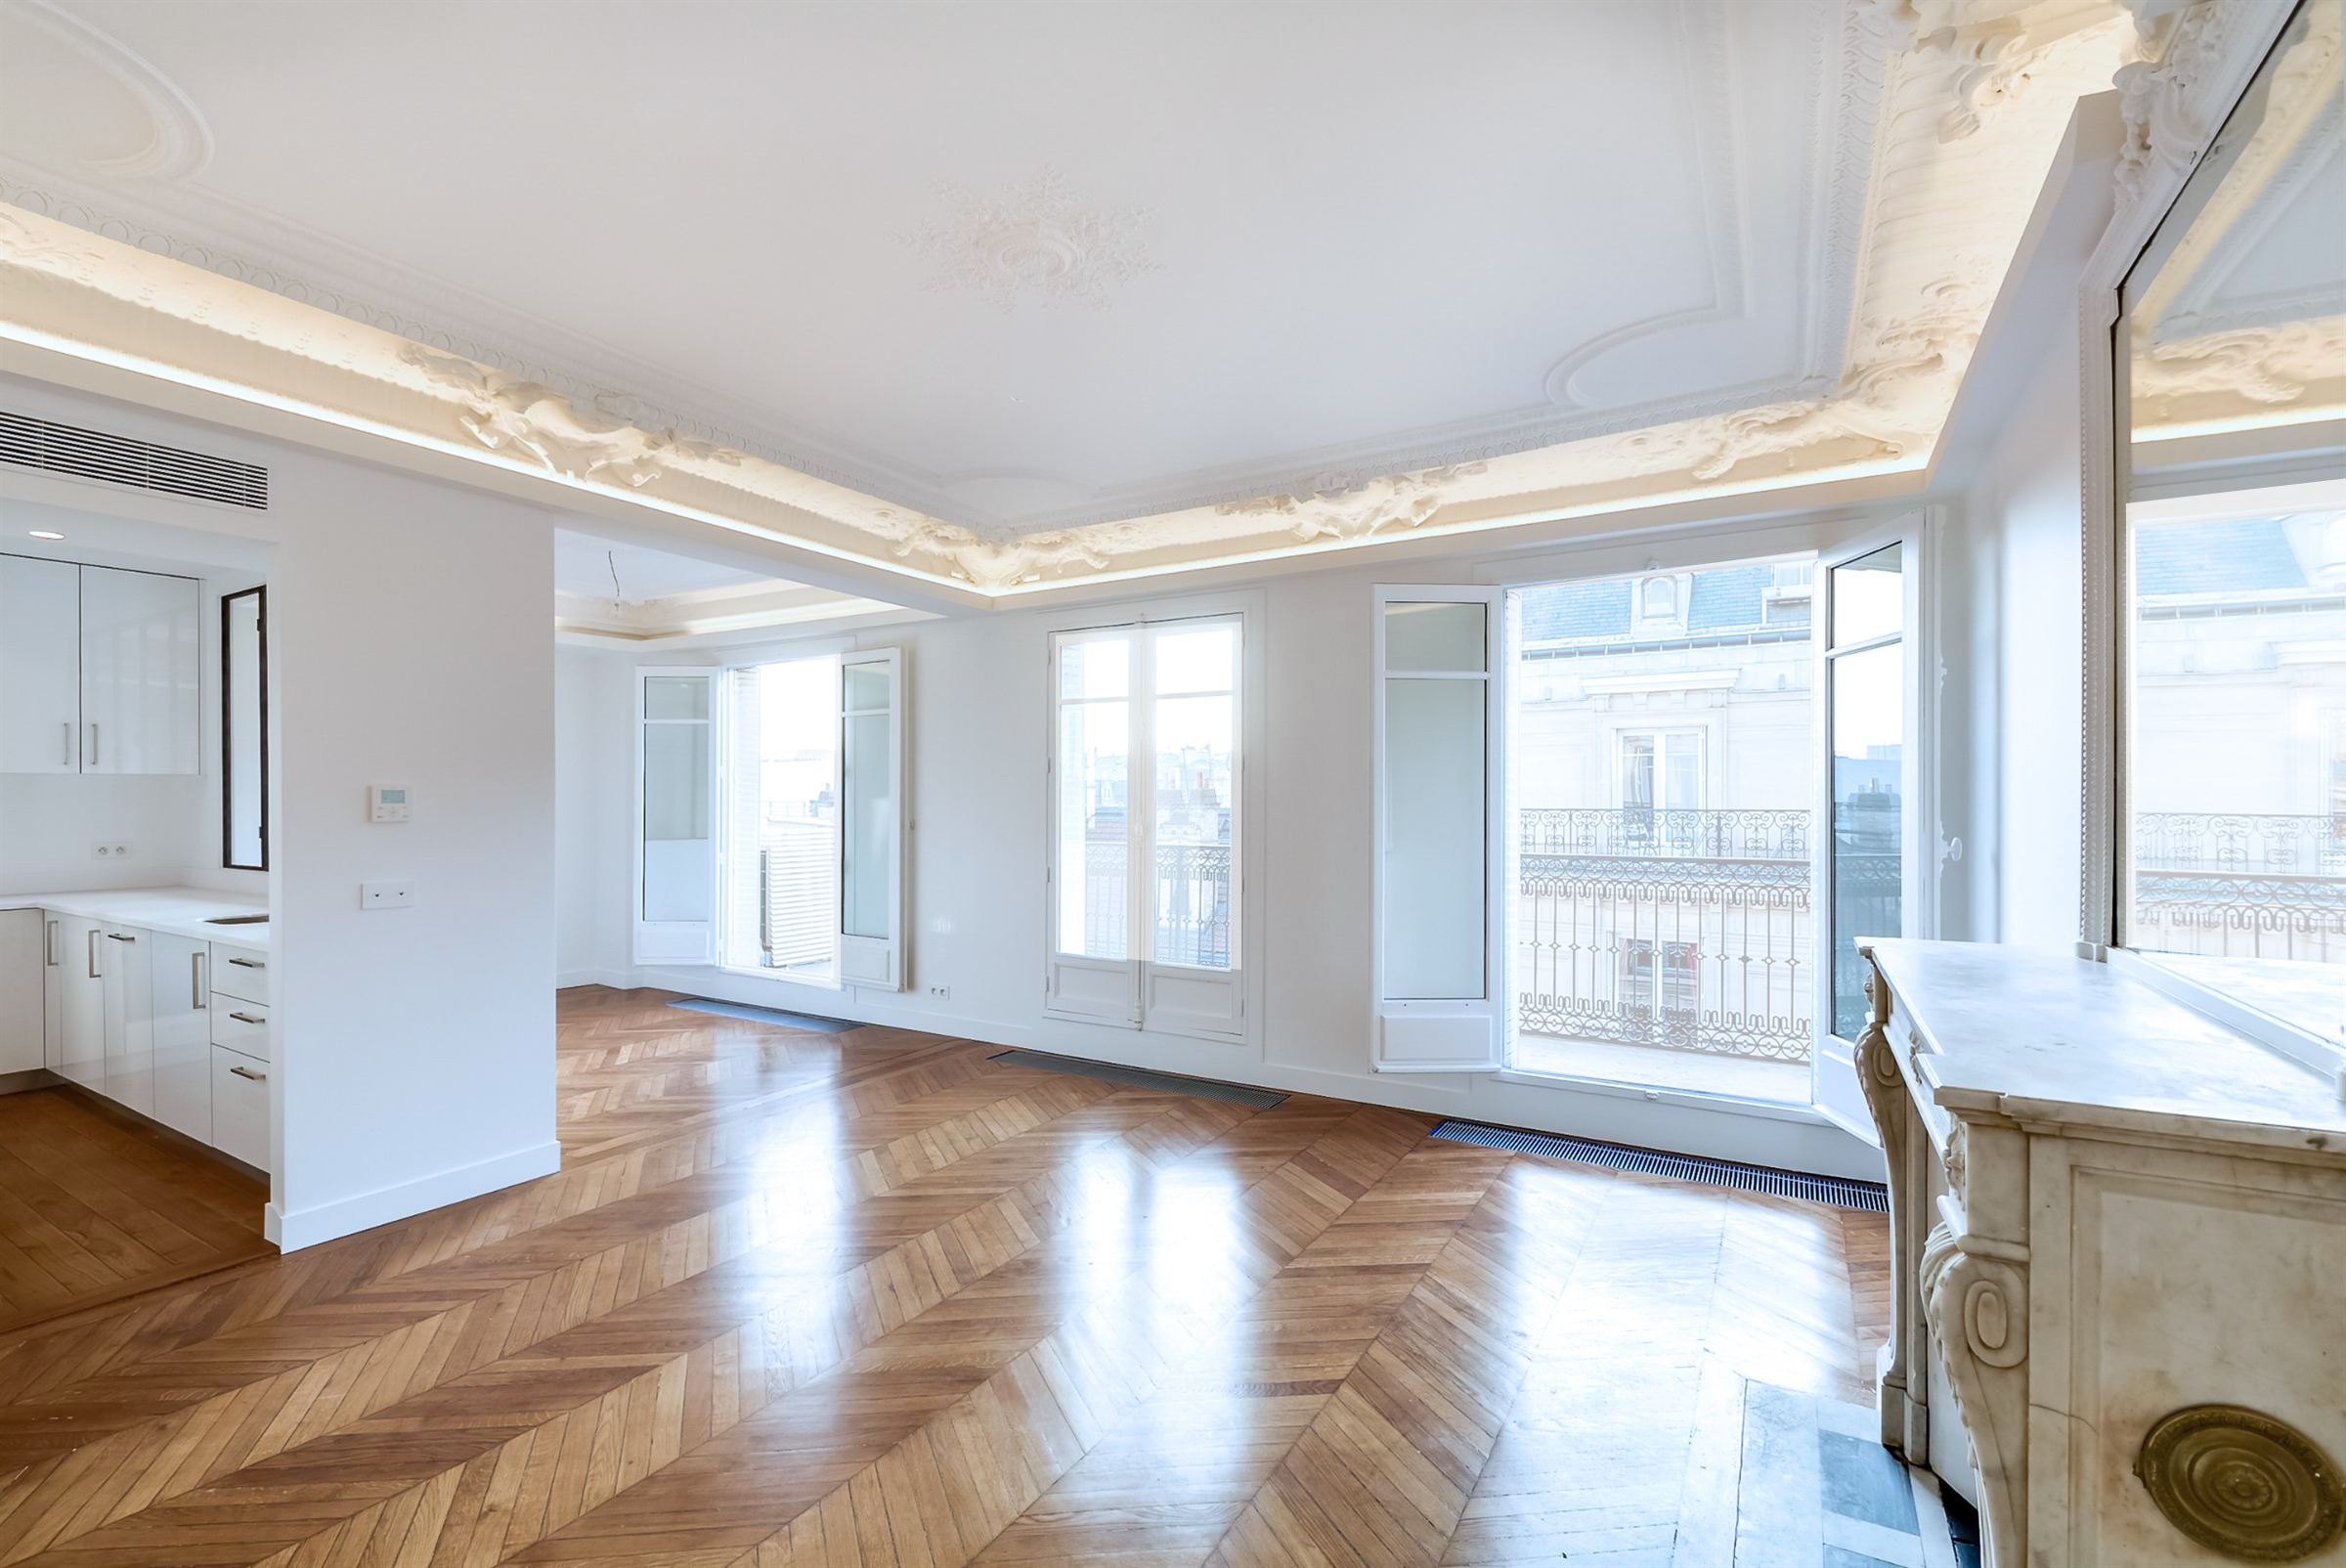 sales property at Paris 8 - Triangle d'Or. Refurbished 91 sq.m. apartment, Eifffel Tower view